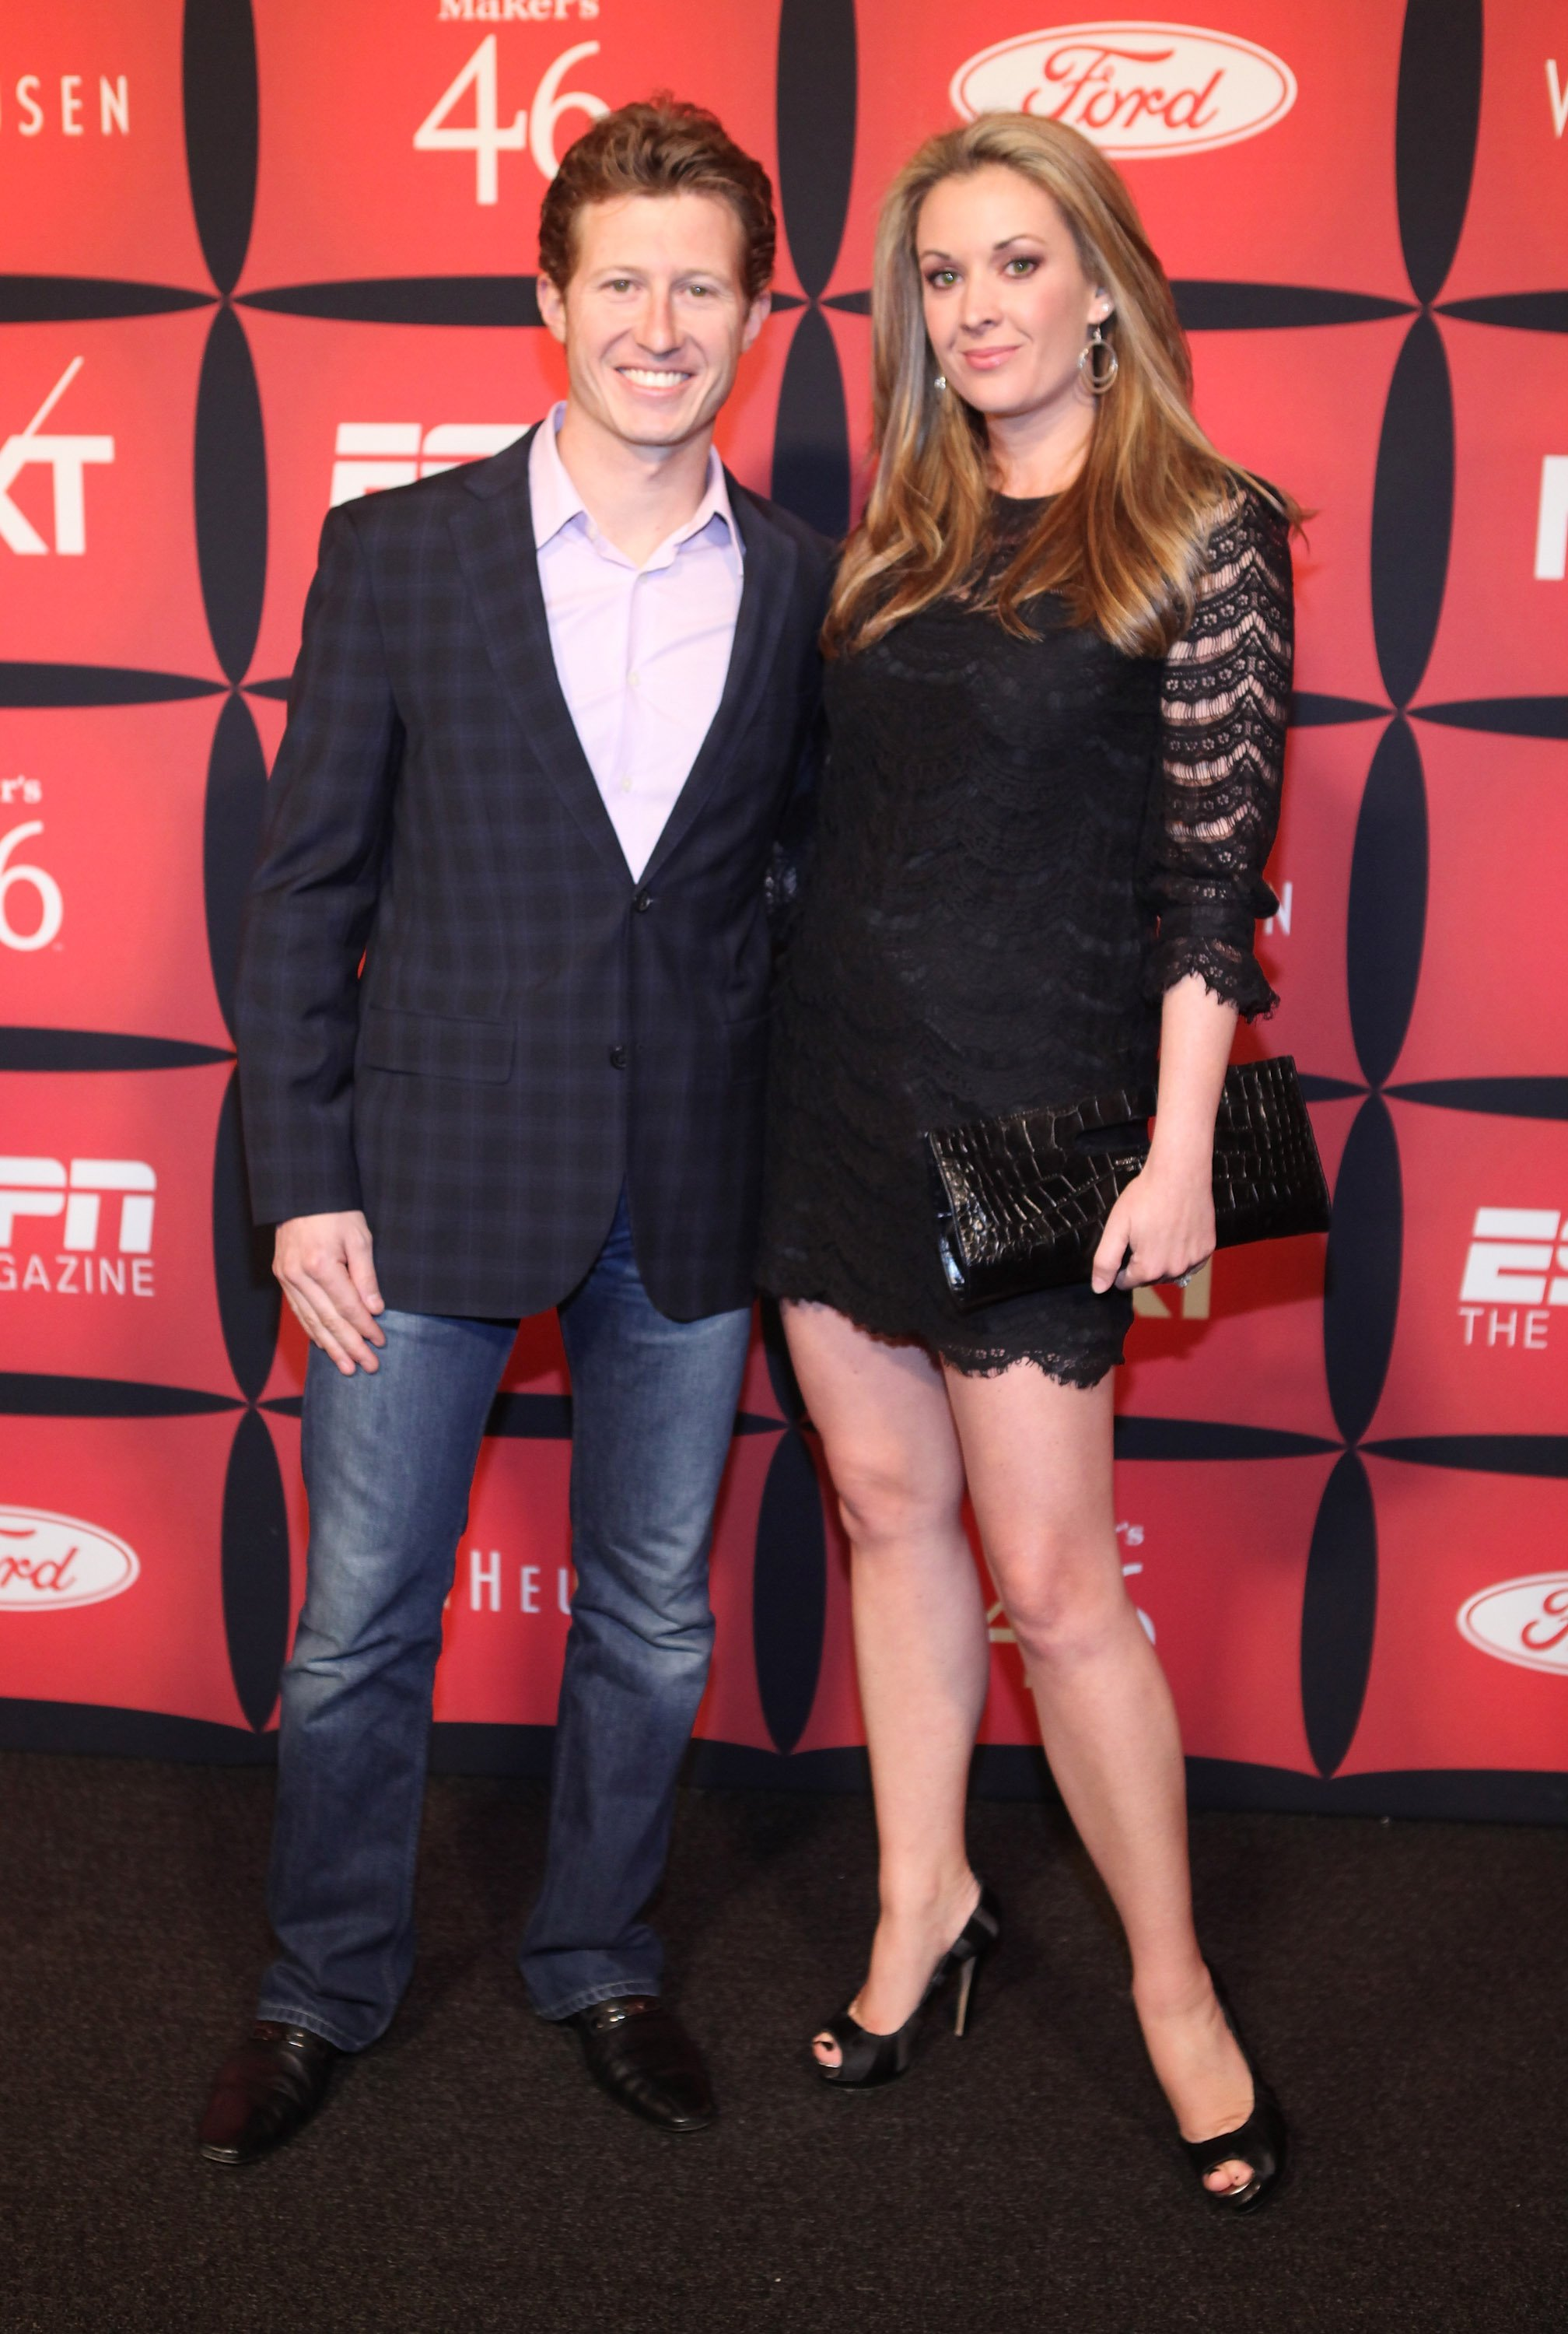 """Race driver Ryan Briscoe and sportscaster Nicole Briscoe attend ESPN The Magazine's """"NEXT"""" Event on February 3, 2012 in Indianapolis, Indiana 